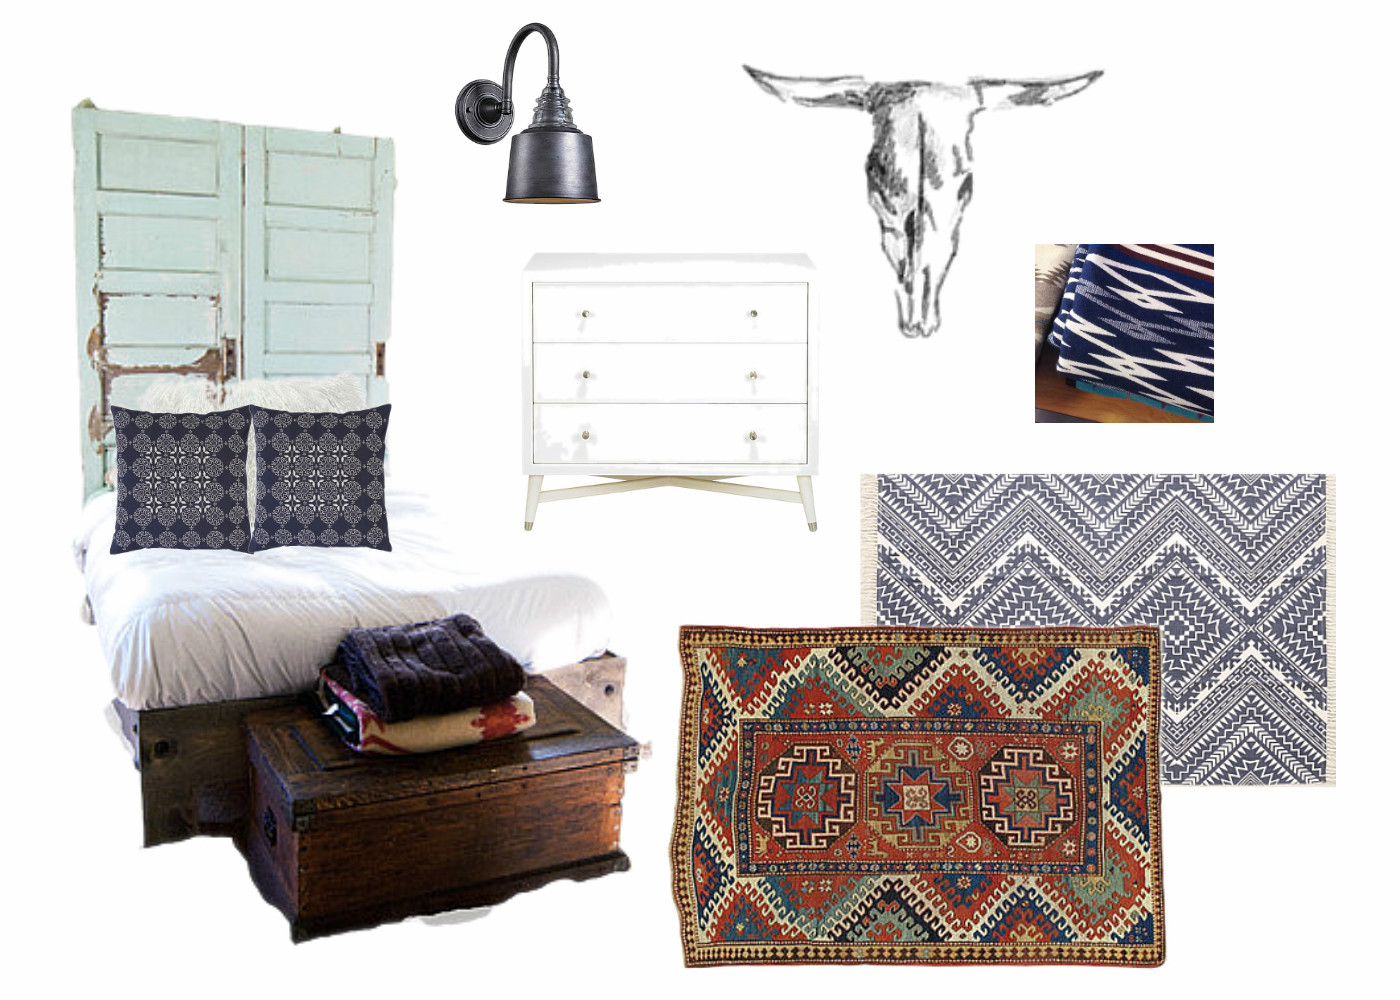 Master Bedroom Makeover - Design Board. Vintage Doors, tribal boho rug, cow skull, wall sconce and mid century night stands